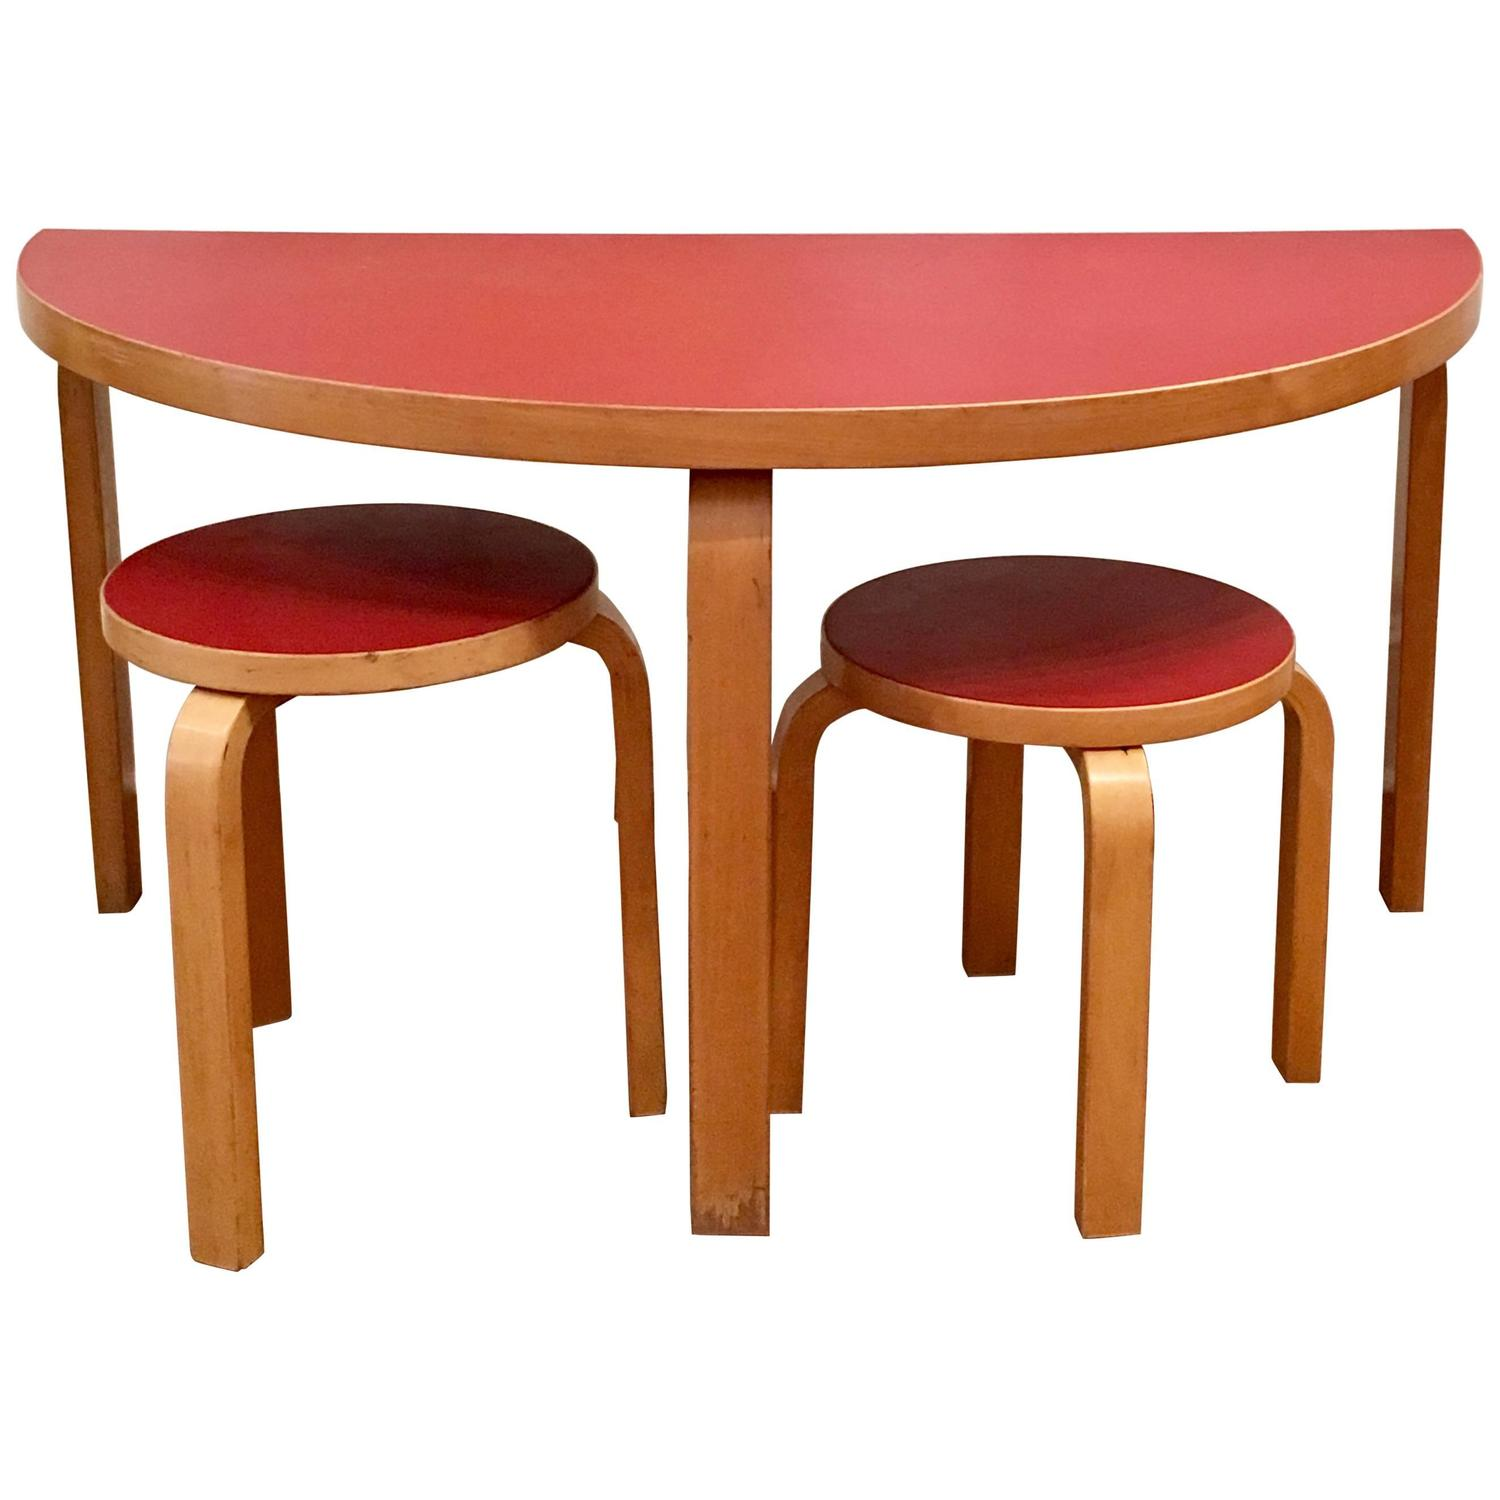 Alvar aalto for artek semicircular table and two stools at 1stdibs geotapseo Gallery